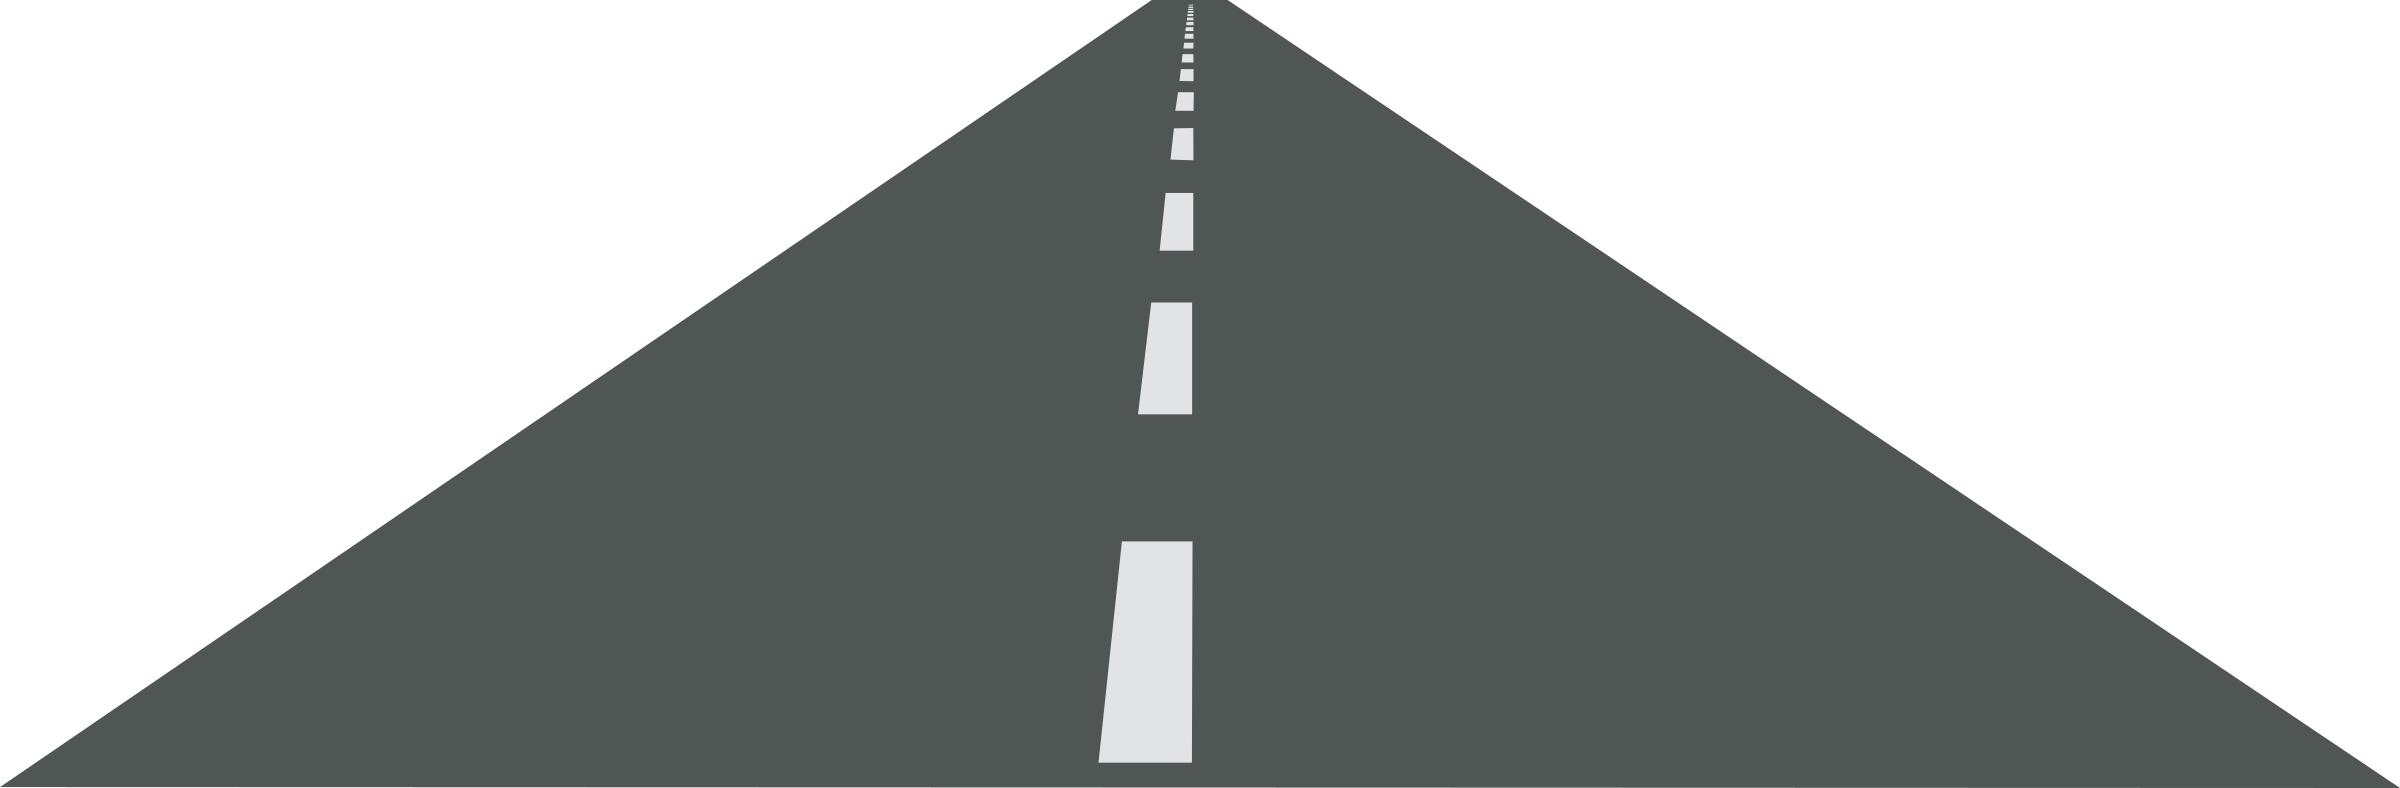 Drawn road #3